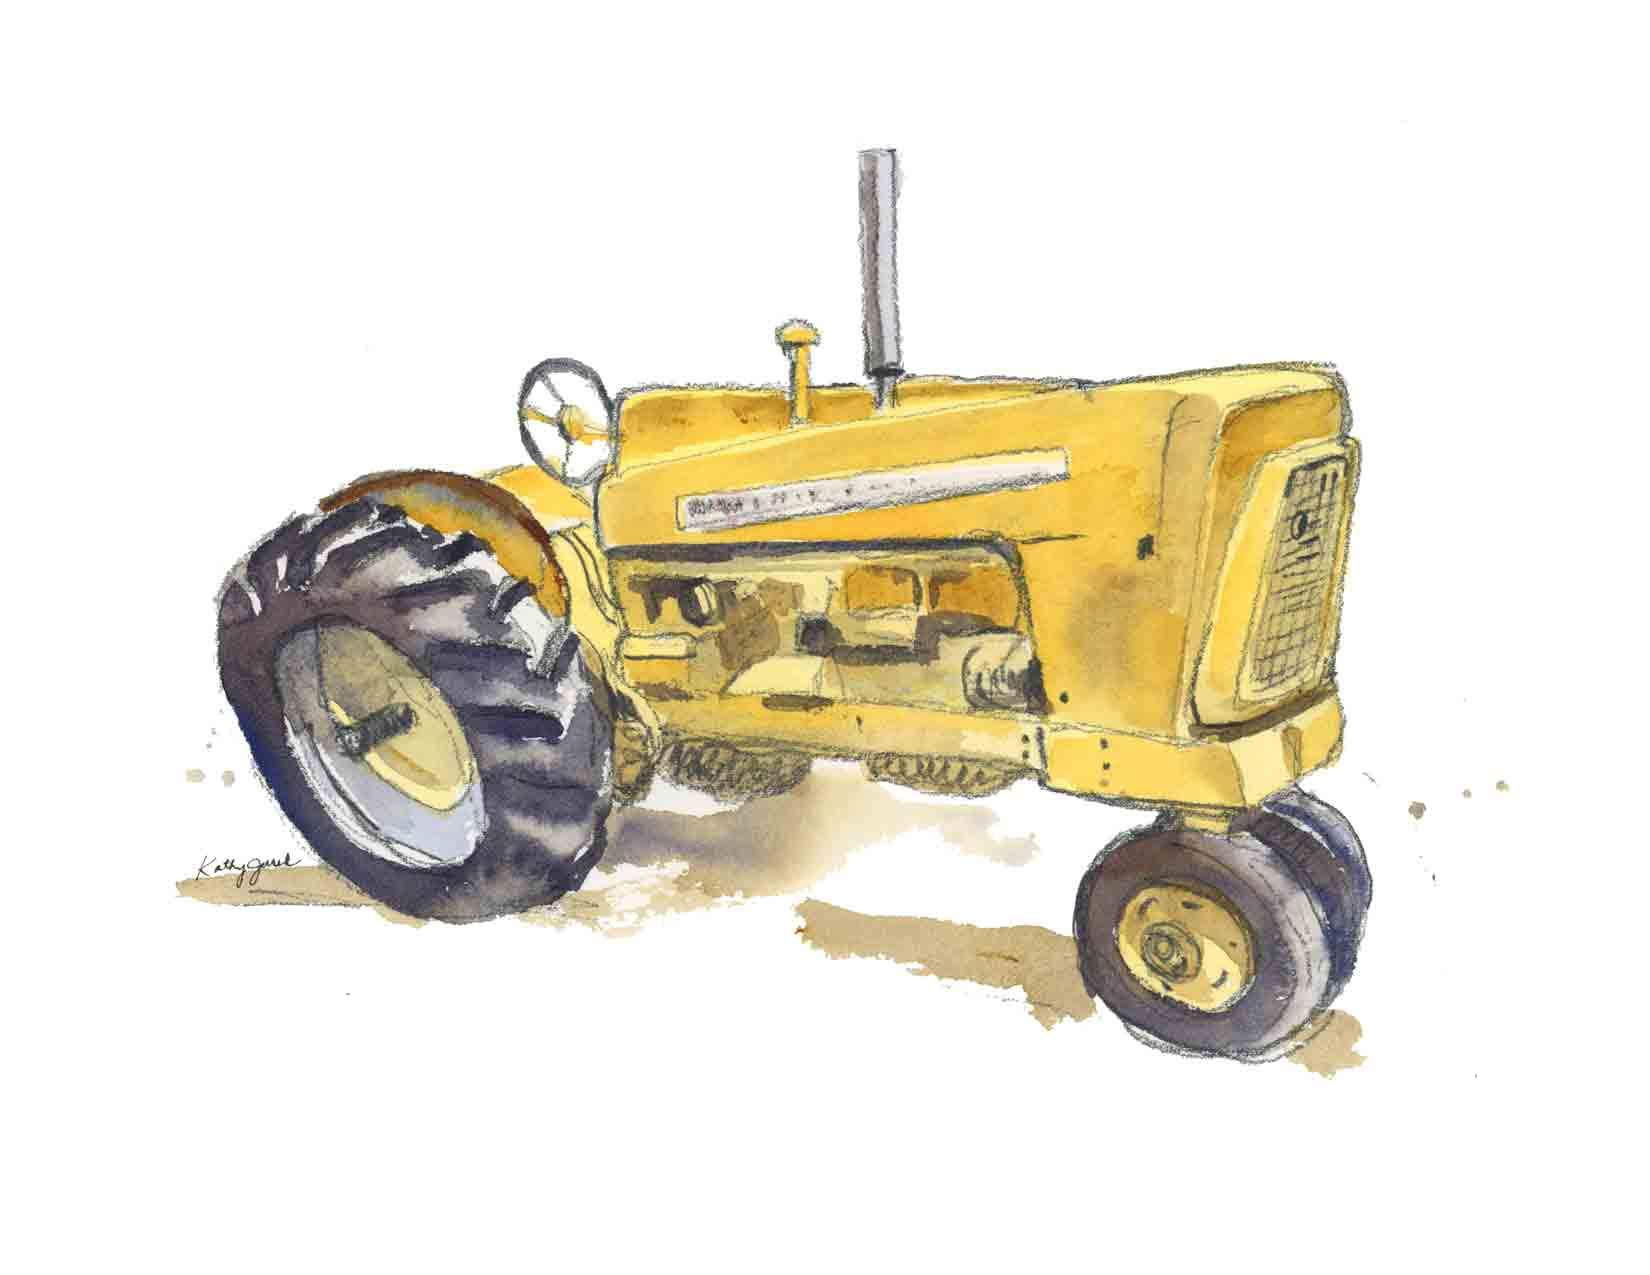 Yellow Farm Tractor Wall Art Print for Kids Room | 1959 Cockshutt Tractor | 8.5 x 11 Inch Gallery Quality Fine Art Giclée Print by Little Splashes of Color